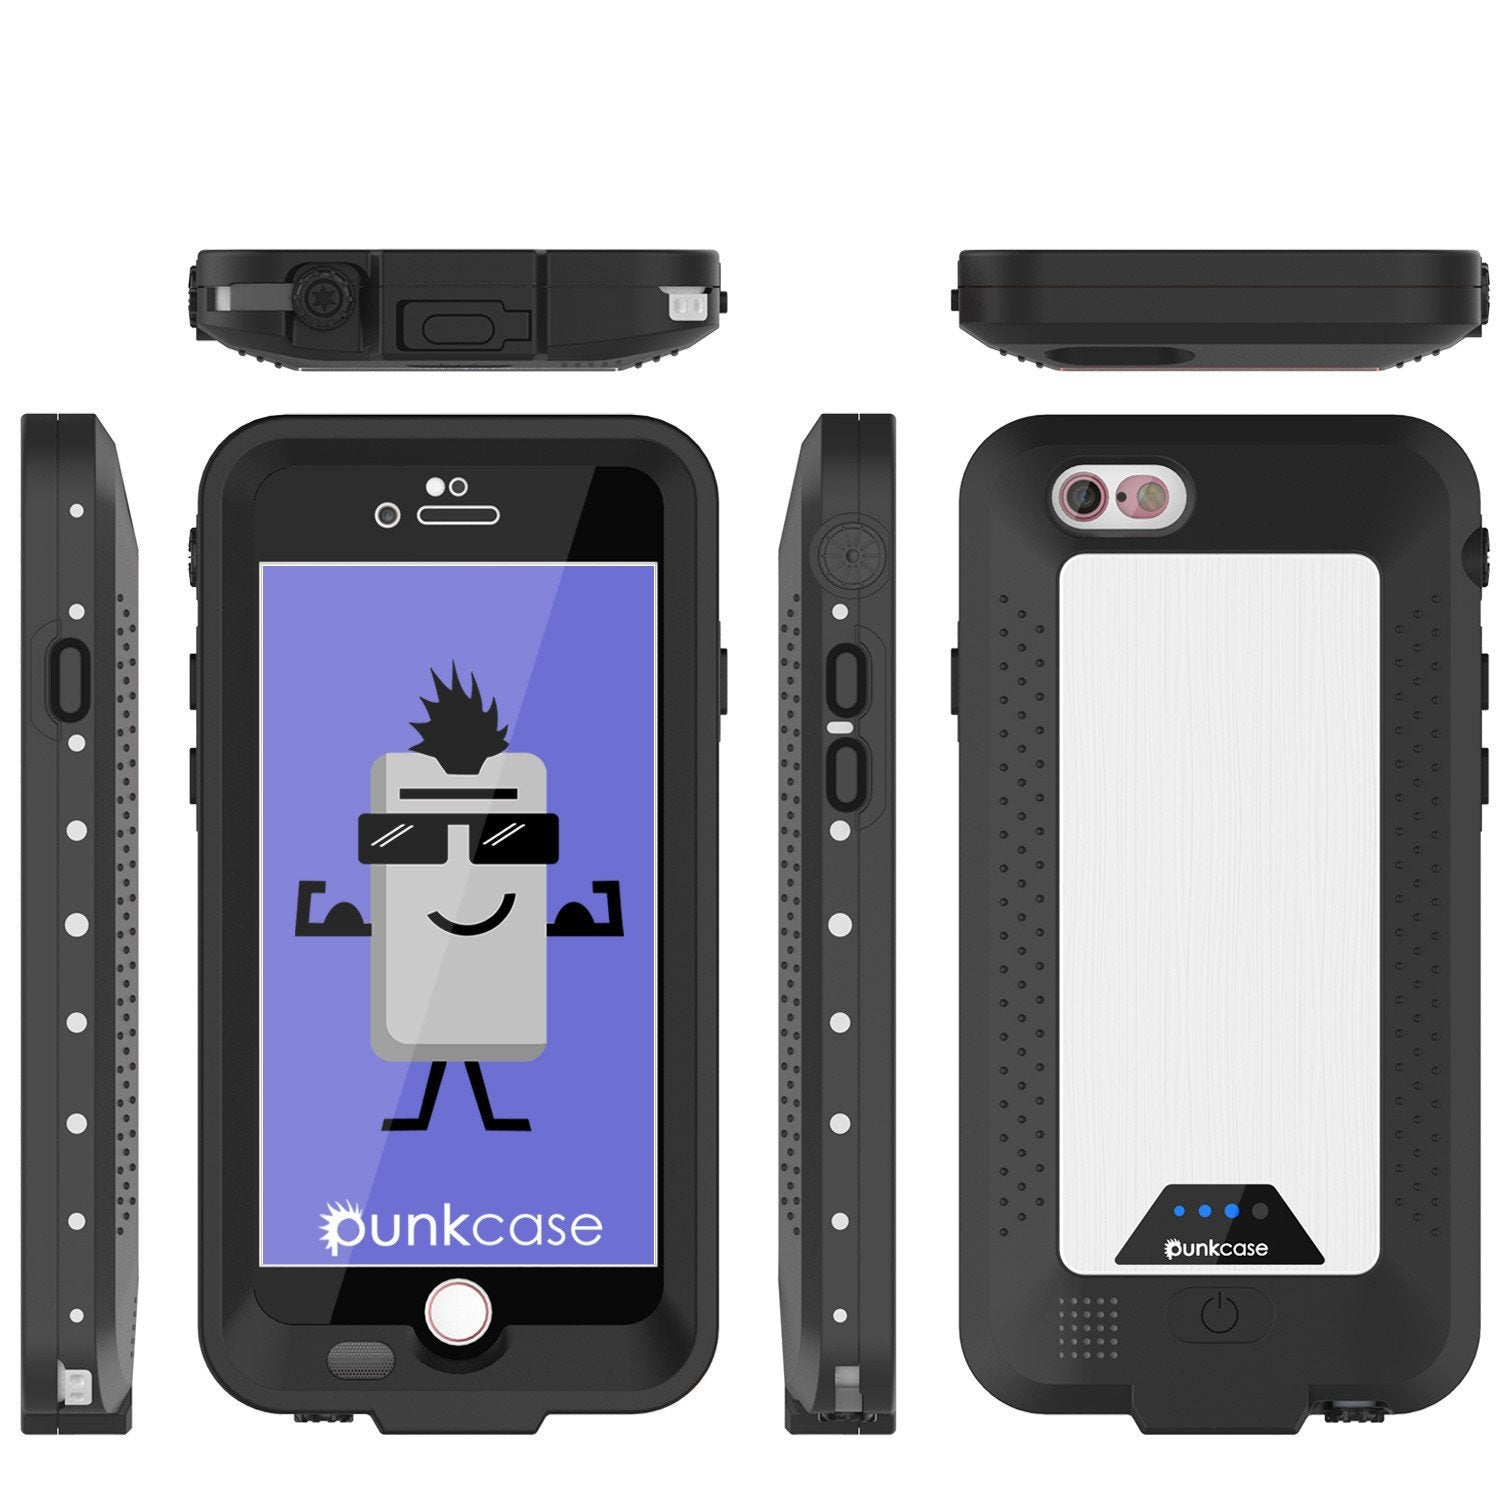 PunkJuice iPhone 6+ Plus/6s+ Plus Battery Case White - Waterproof Power Juice Bank w/ 4300mAh - PunkCase NZ